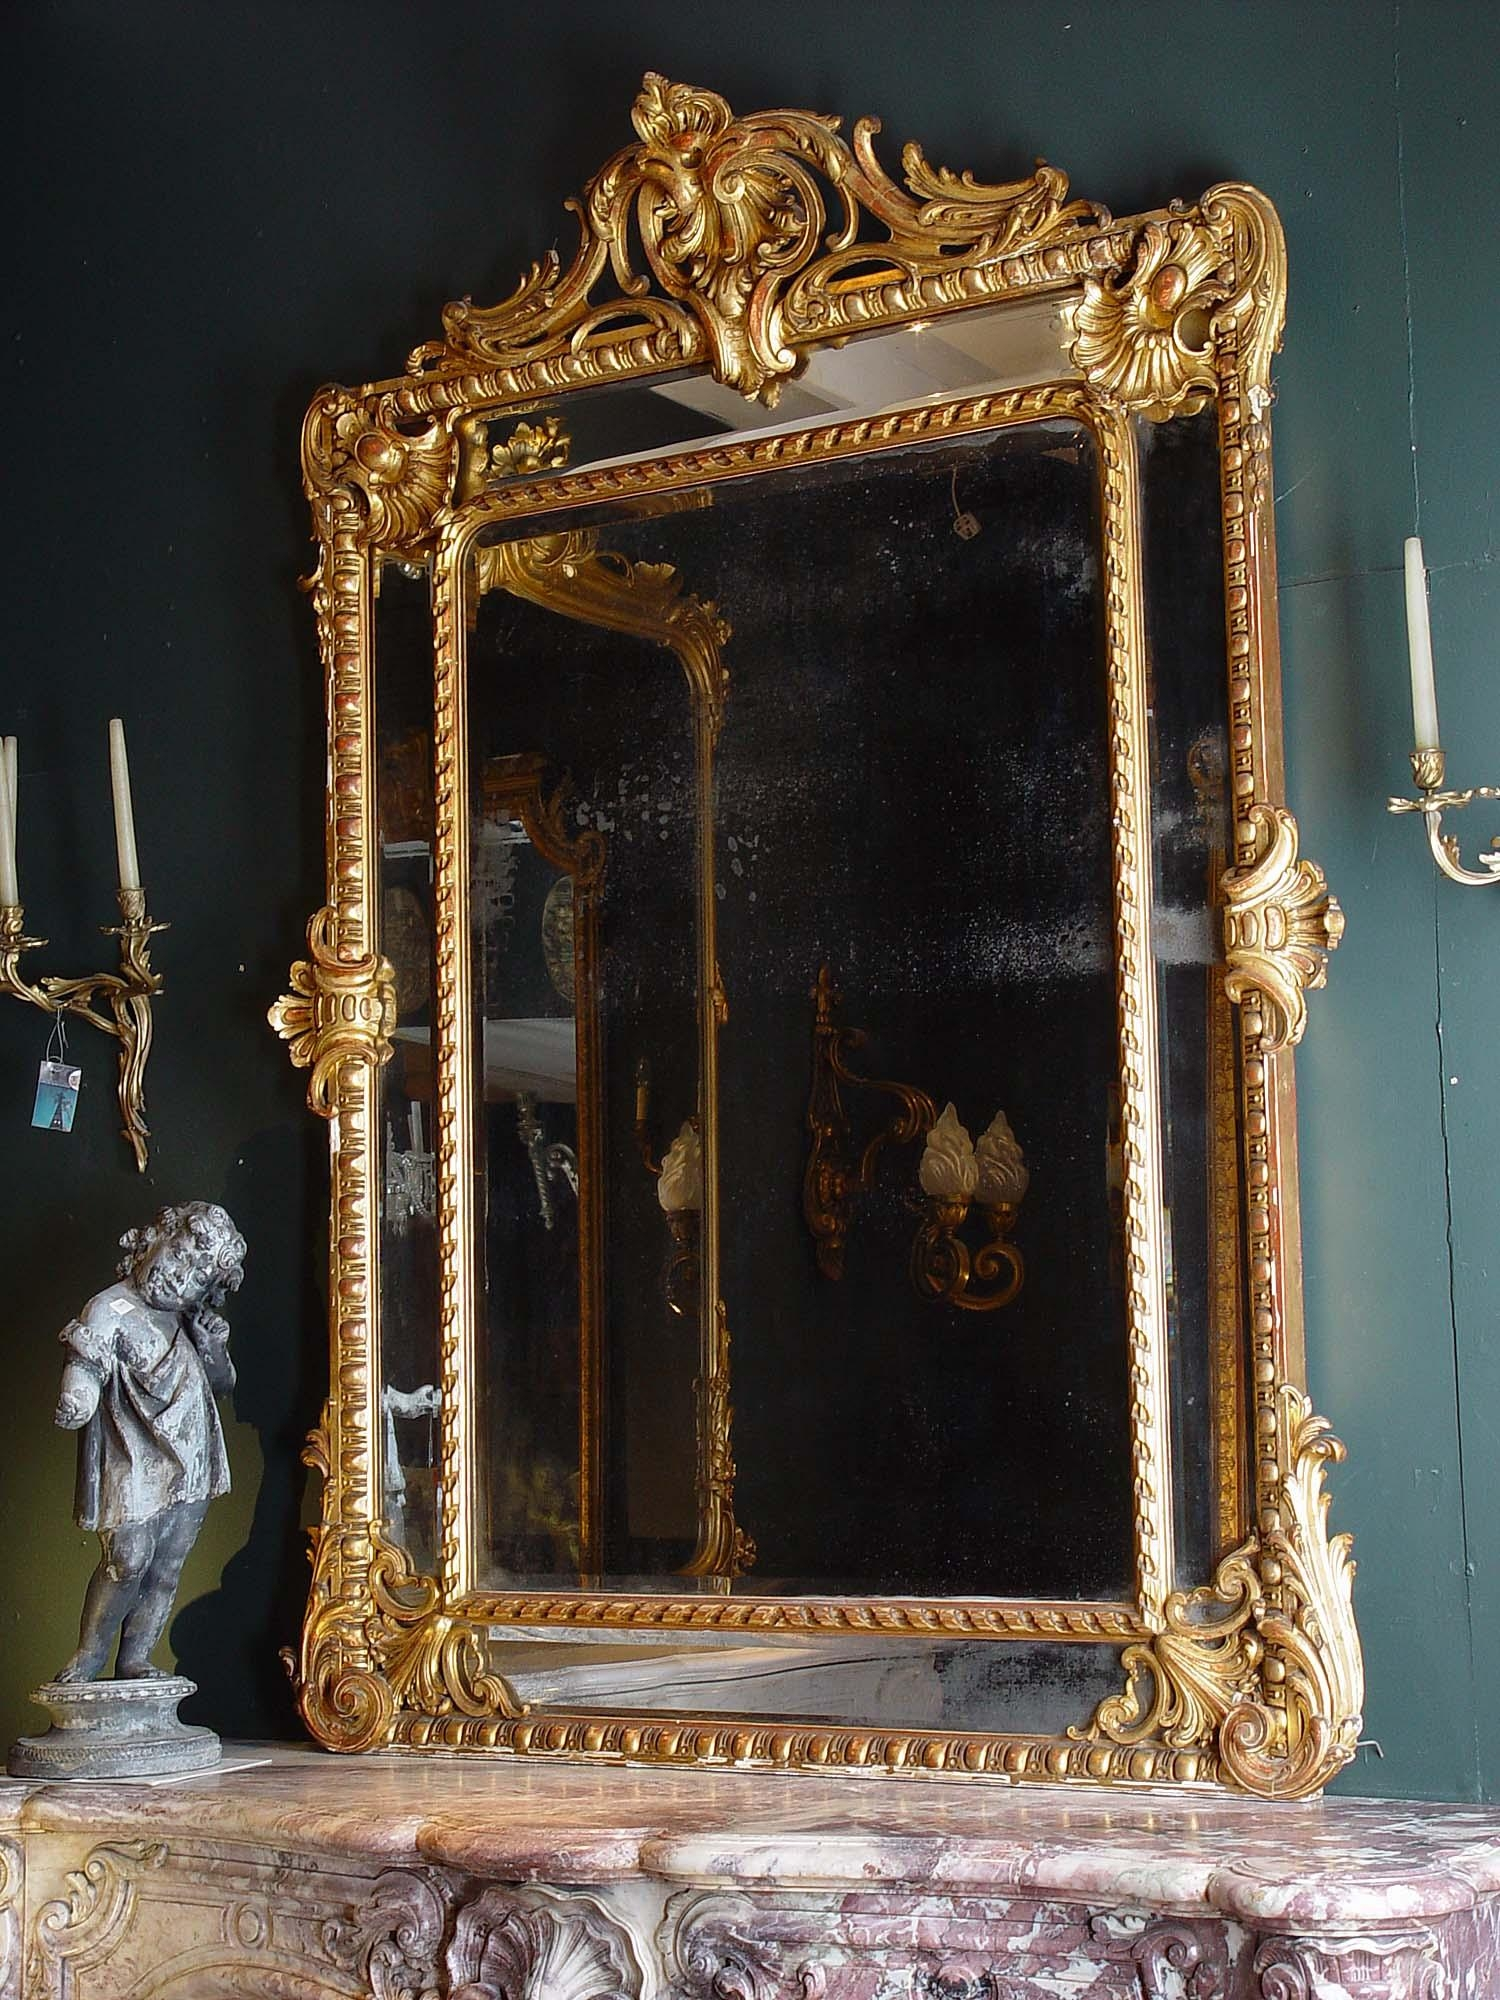 Big Mirrors For Sale 103 Trendy Interior Or Large Gold Very Ornate With Regard To Antique Gold Mirrors For Sale (Image 8 of 20)